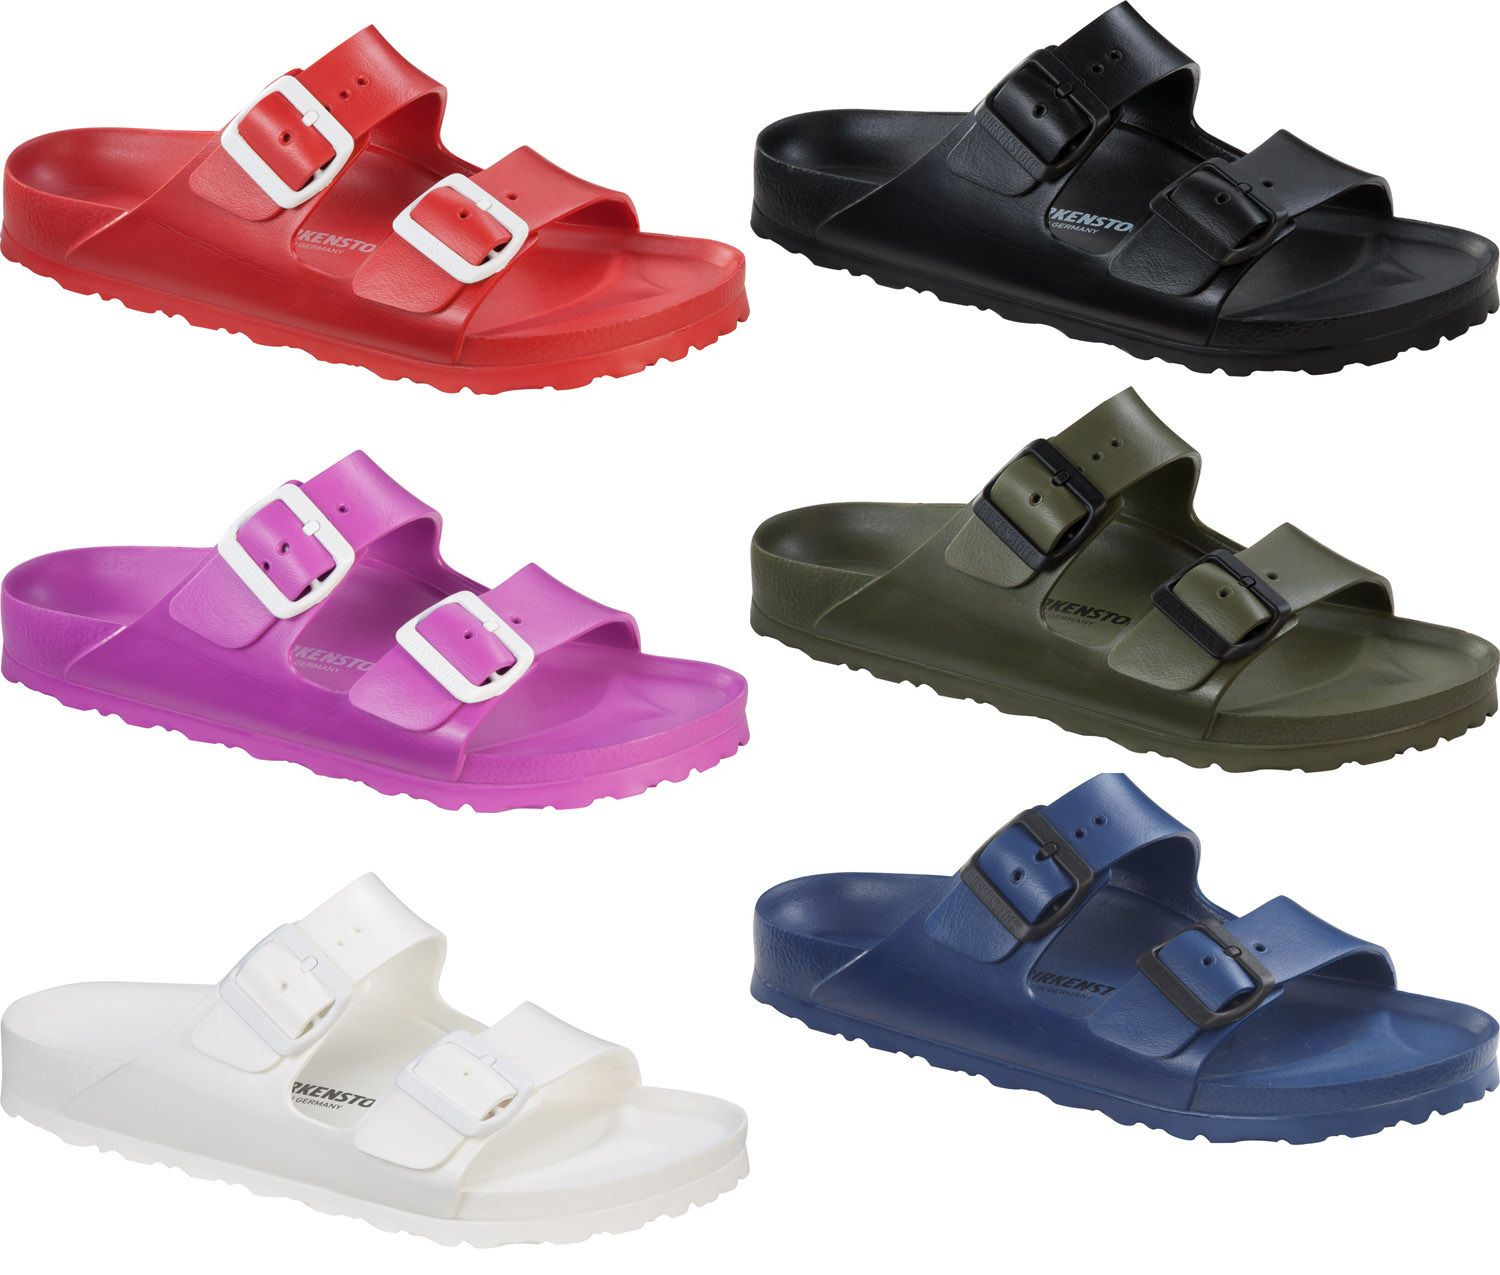 e4960d7e3b44 Birkenstock Arizona EVA Rubber Sandals Lightweight NEW Colors AND Sizes  Vegan